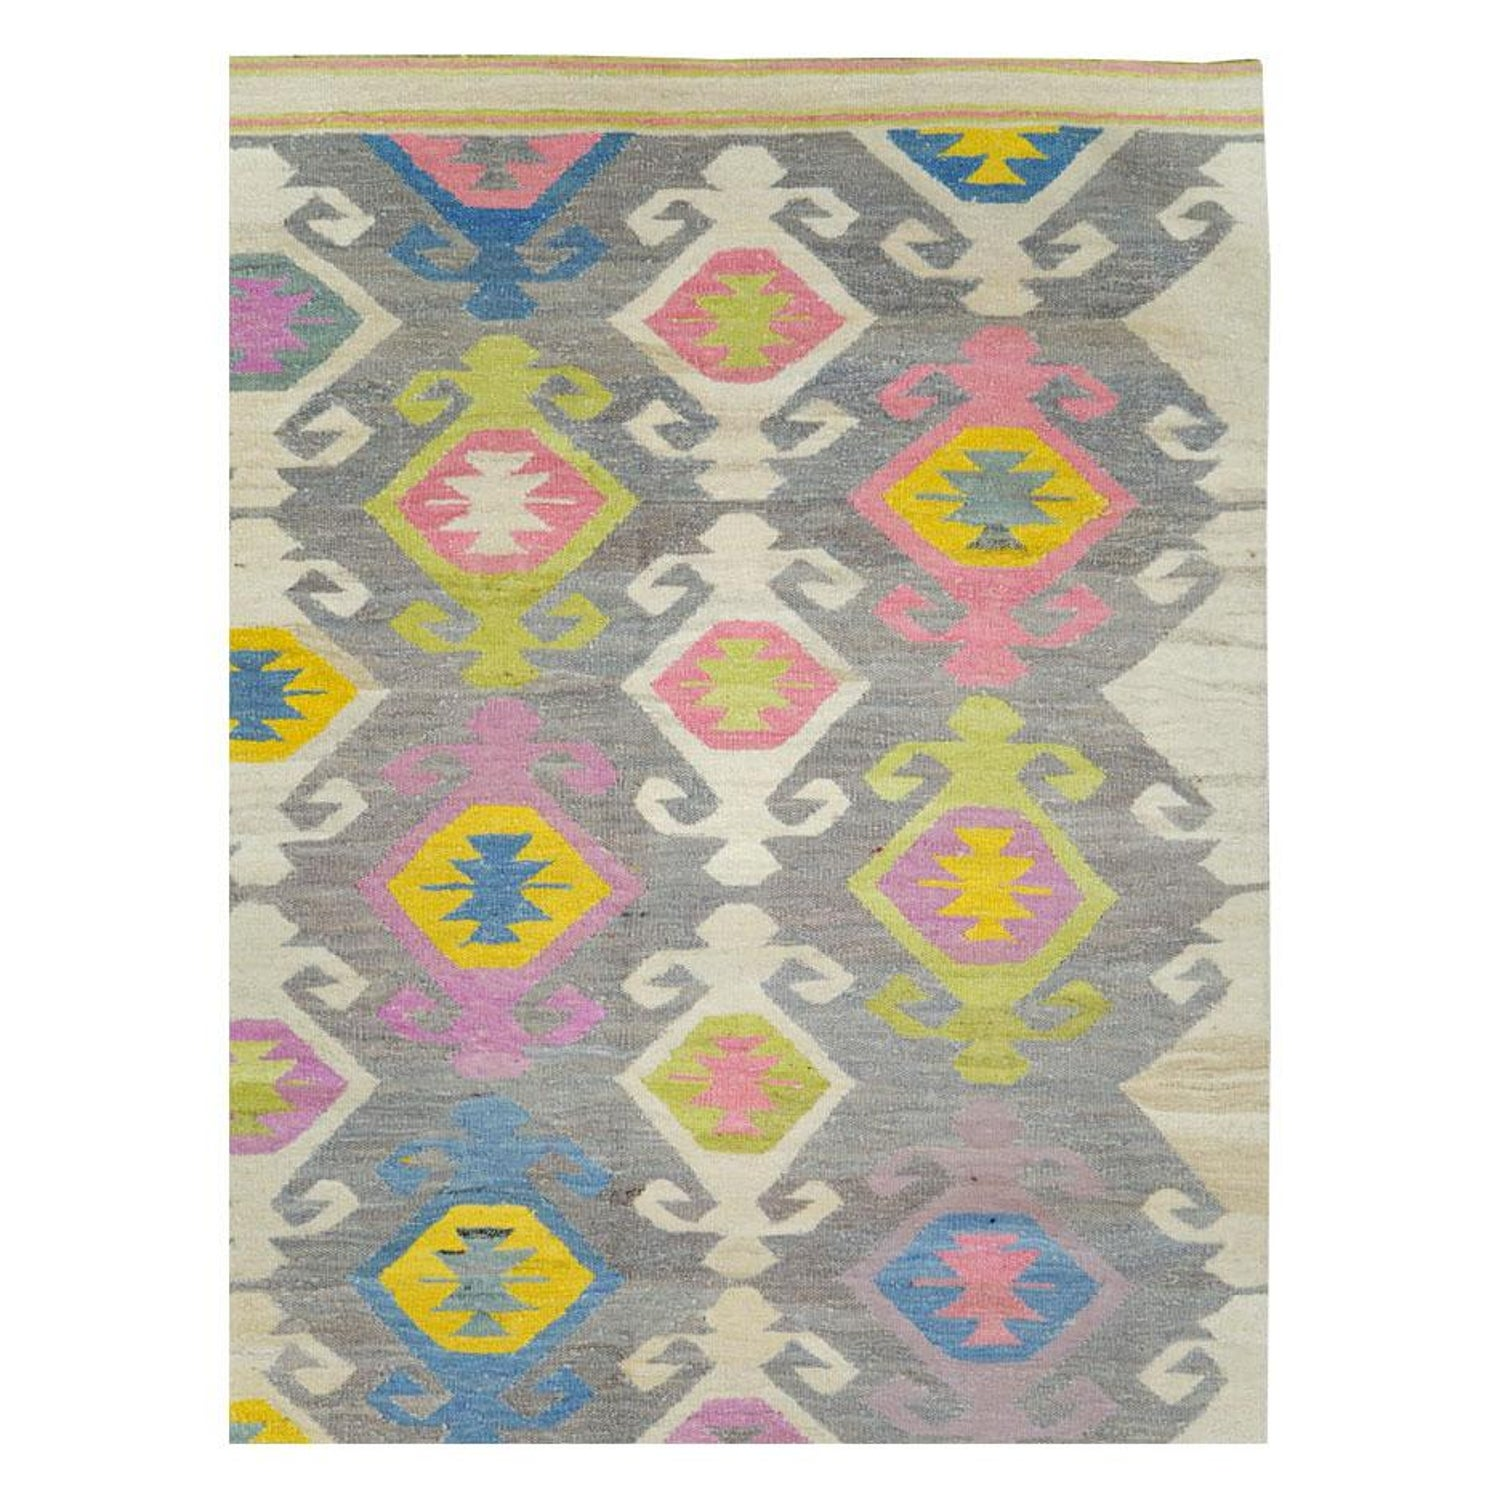 Contemporary Handmade Flat Weave Rug In Grey Beige Yellow Pink Blue Green For Sale At 1stdibs